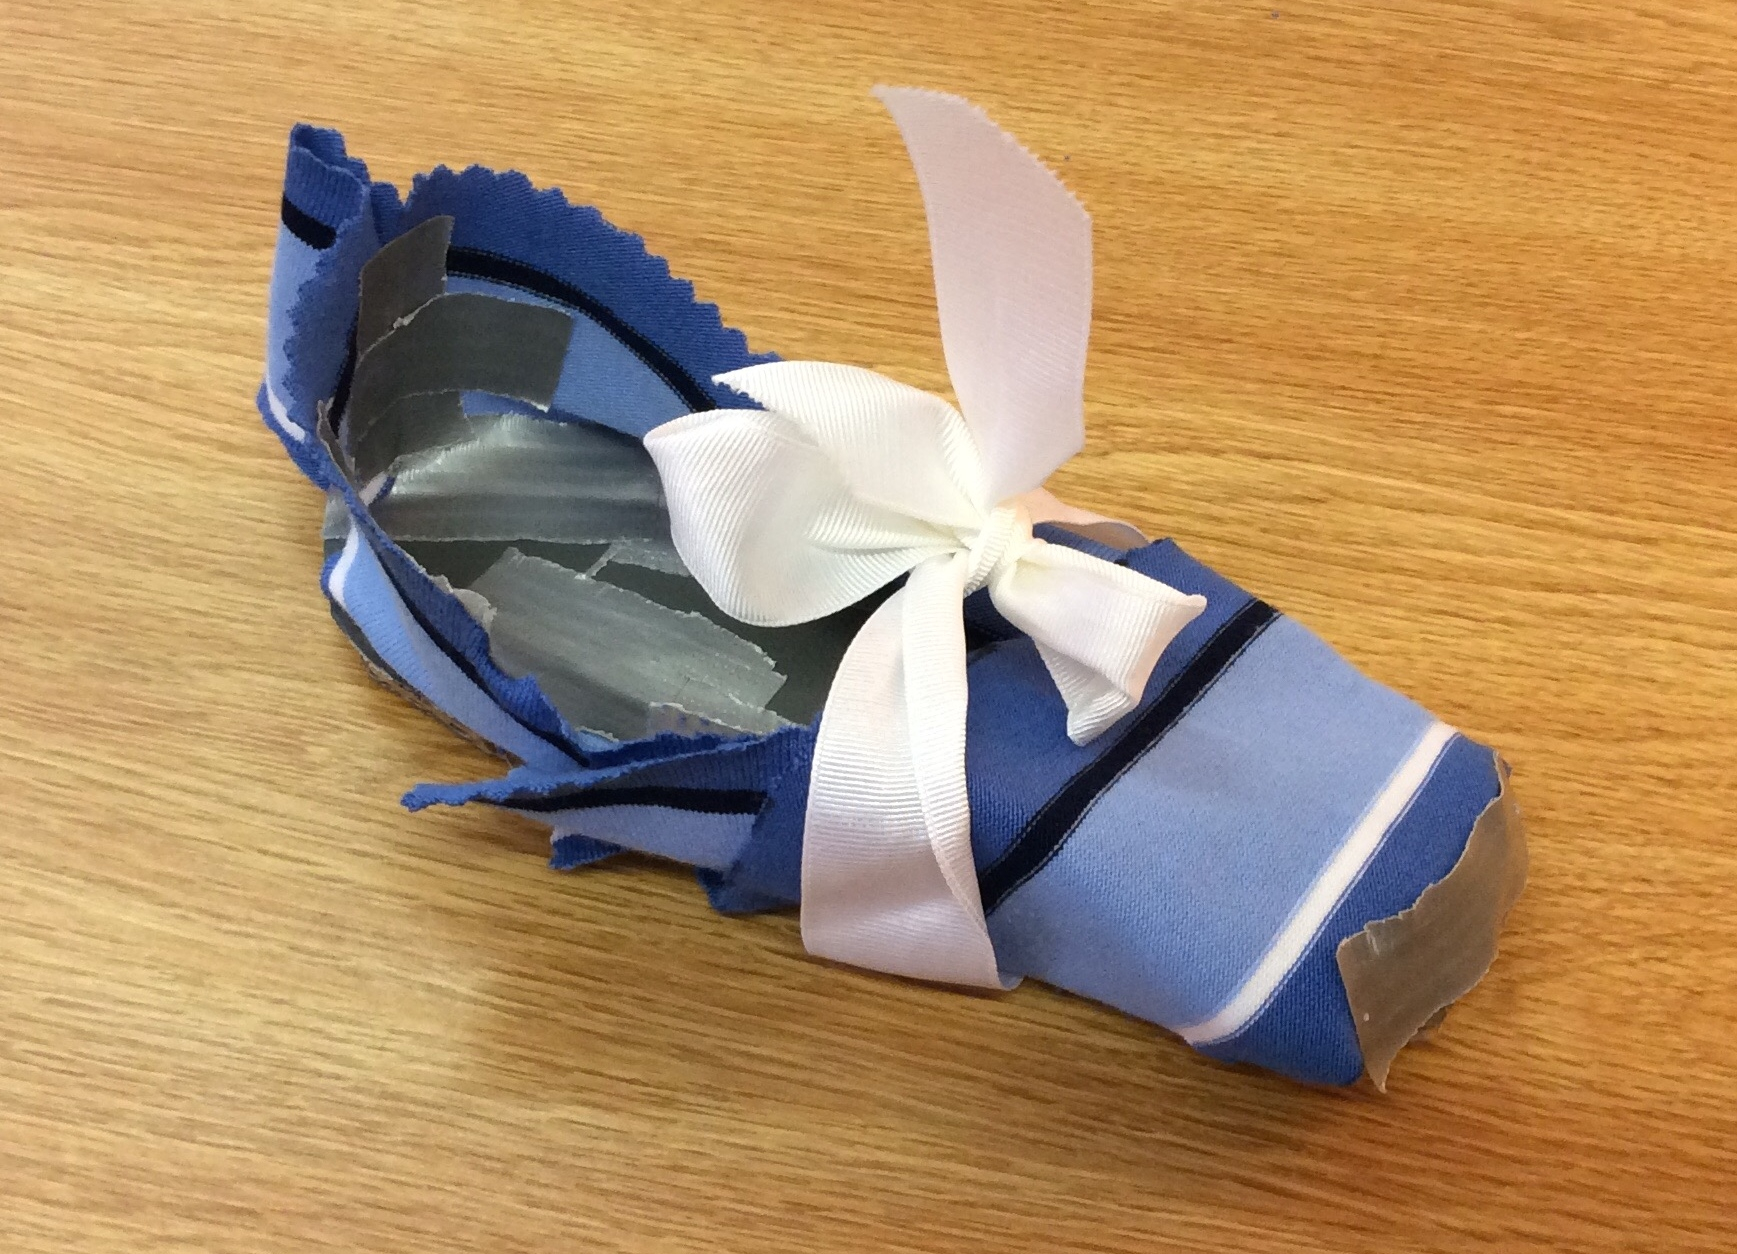 Figure 7. A ballerina-inspired shoe.jpg